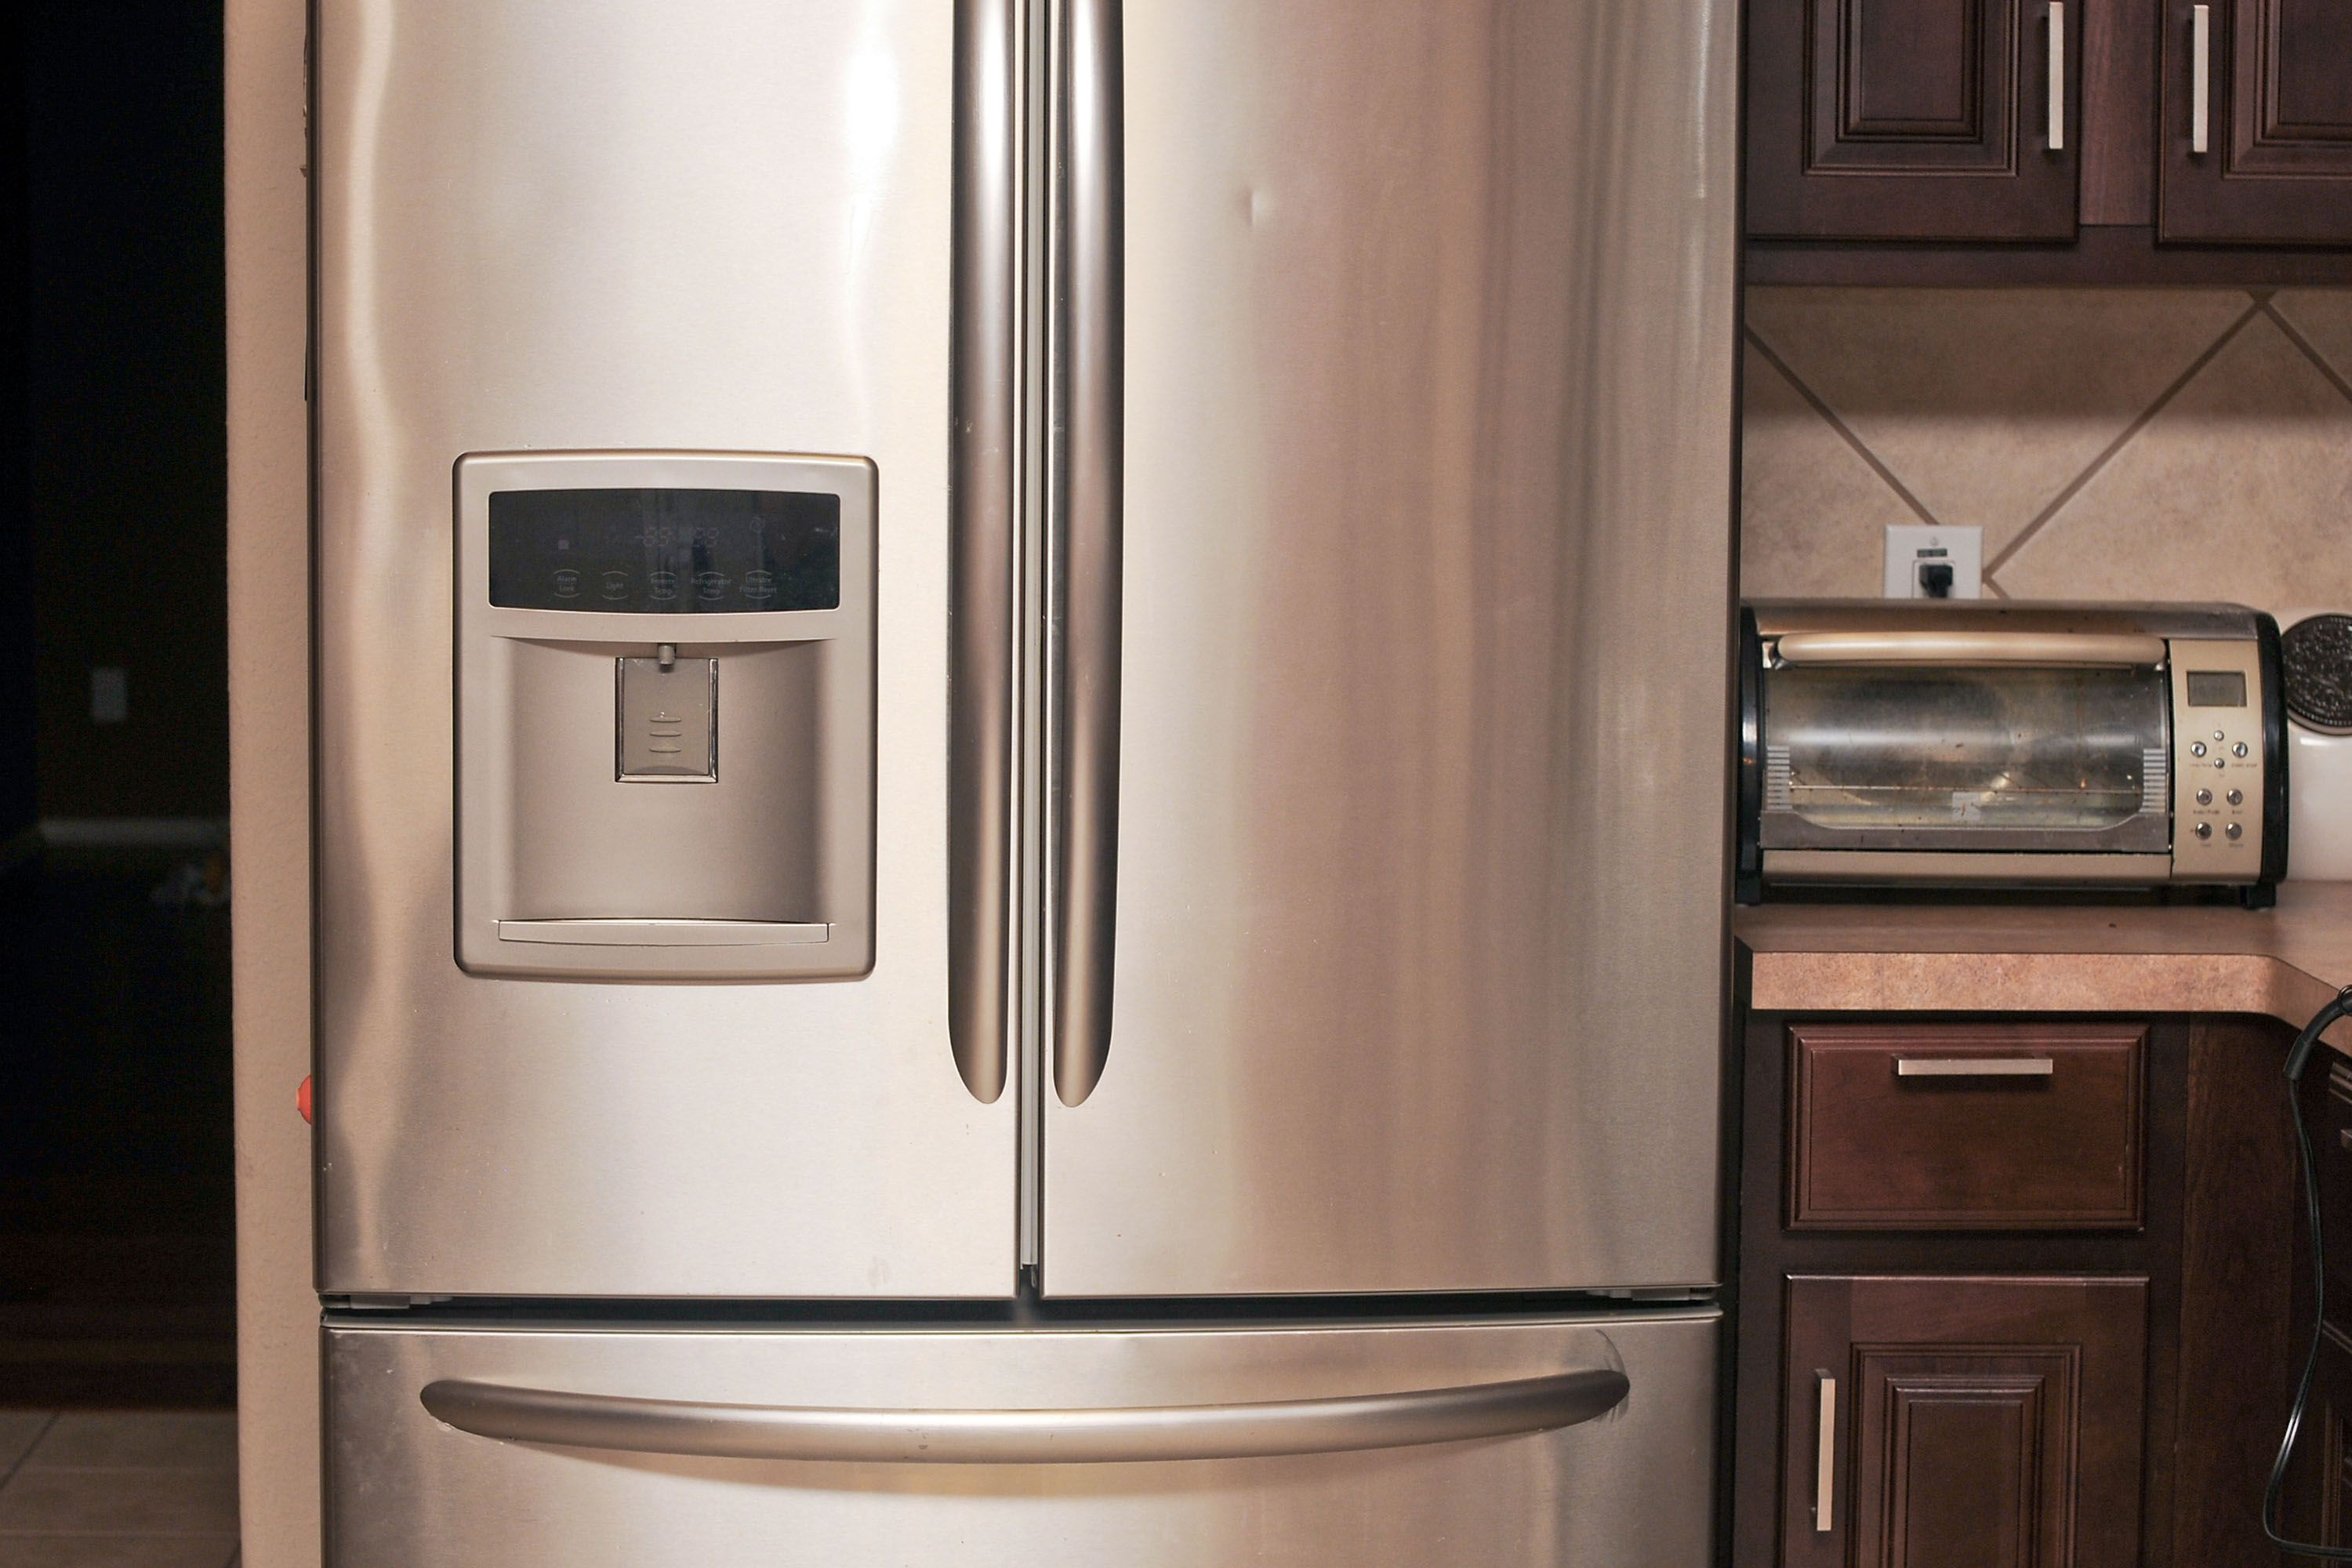 How To Fix A Dent On Stainless Steel Fridge Cleaning